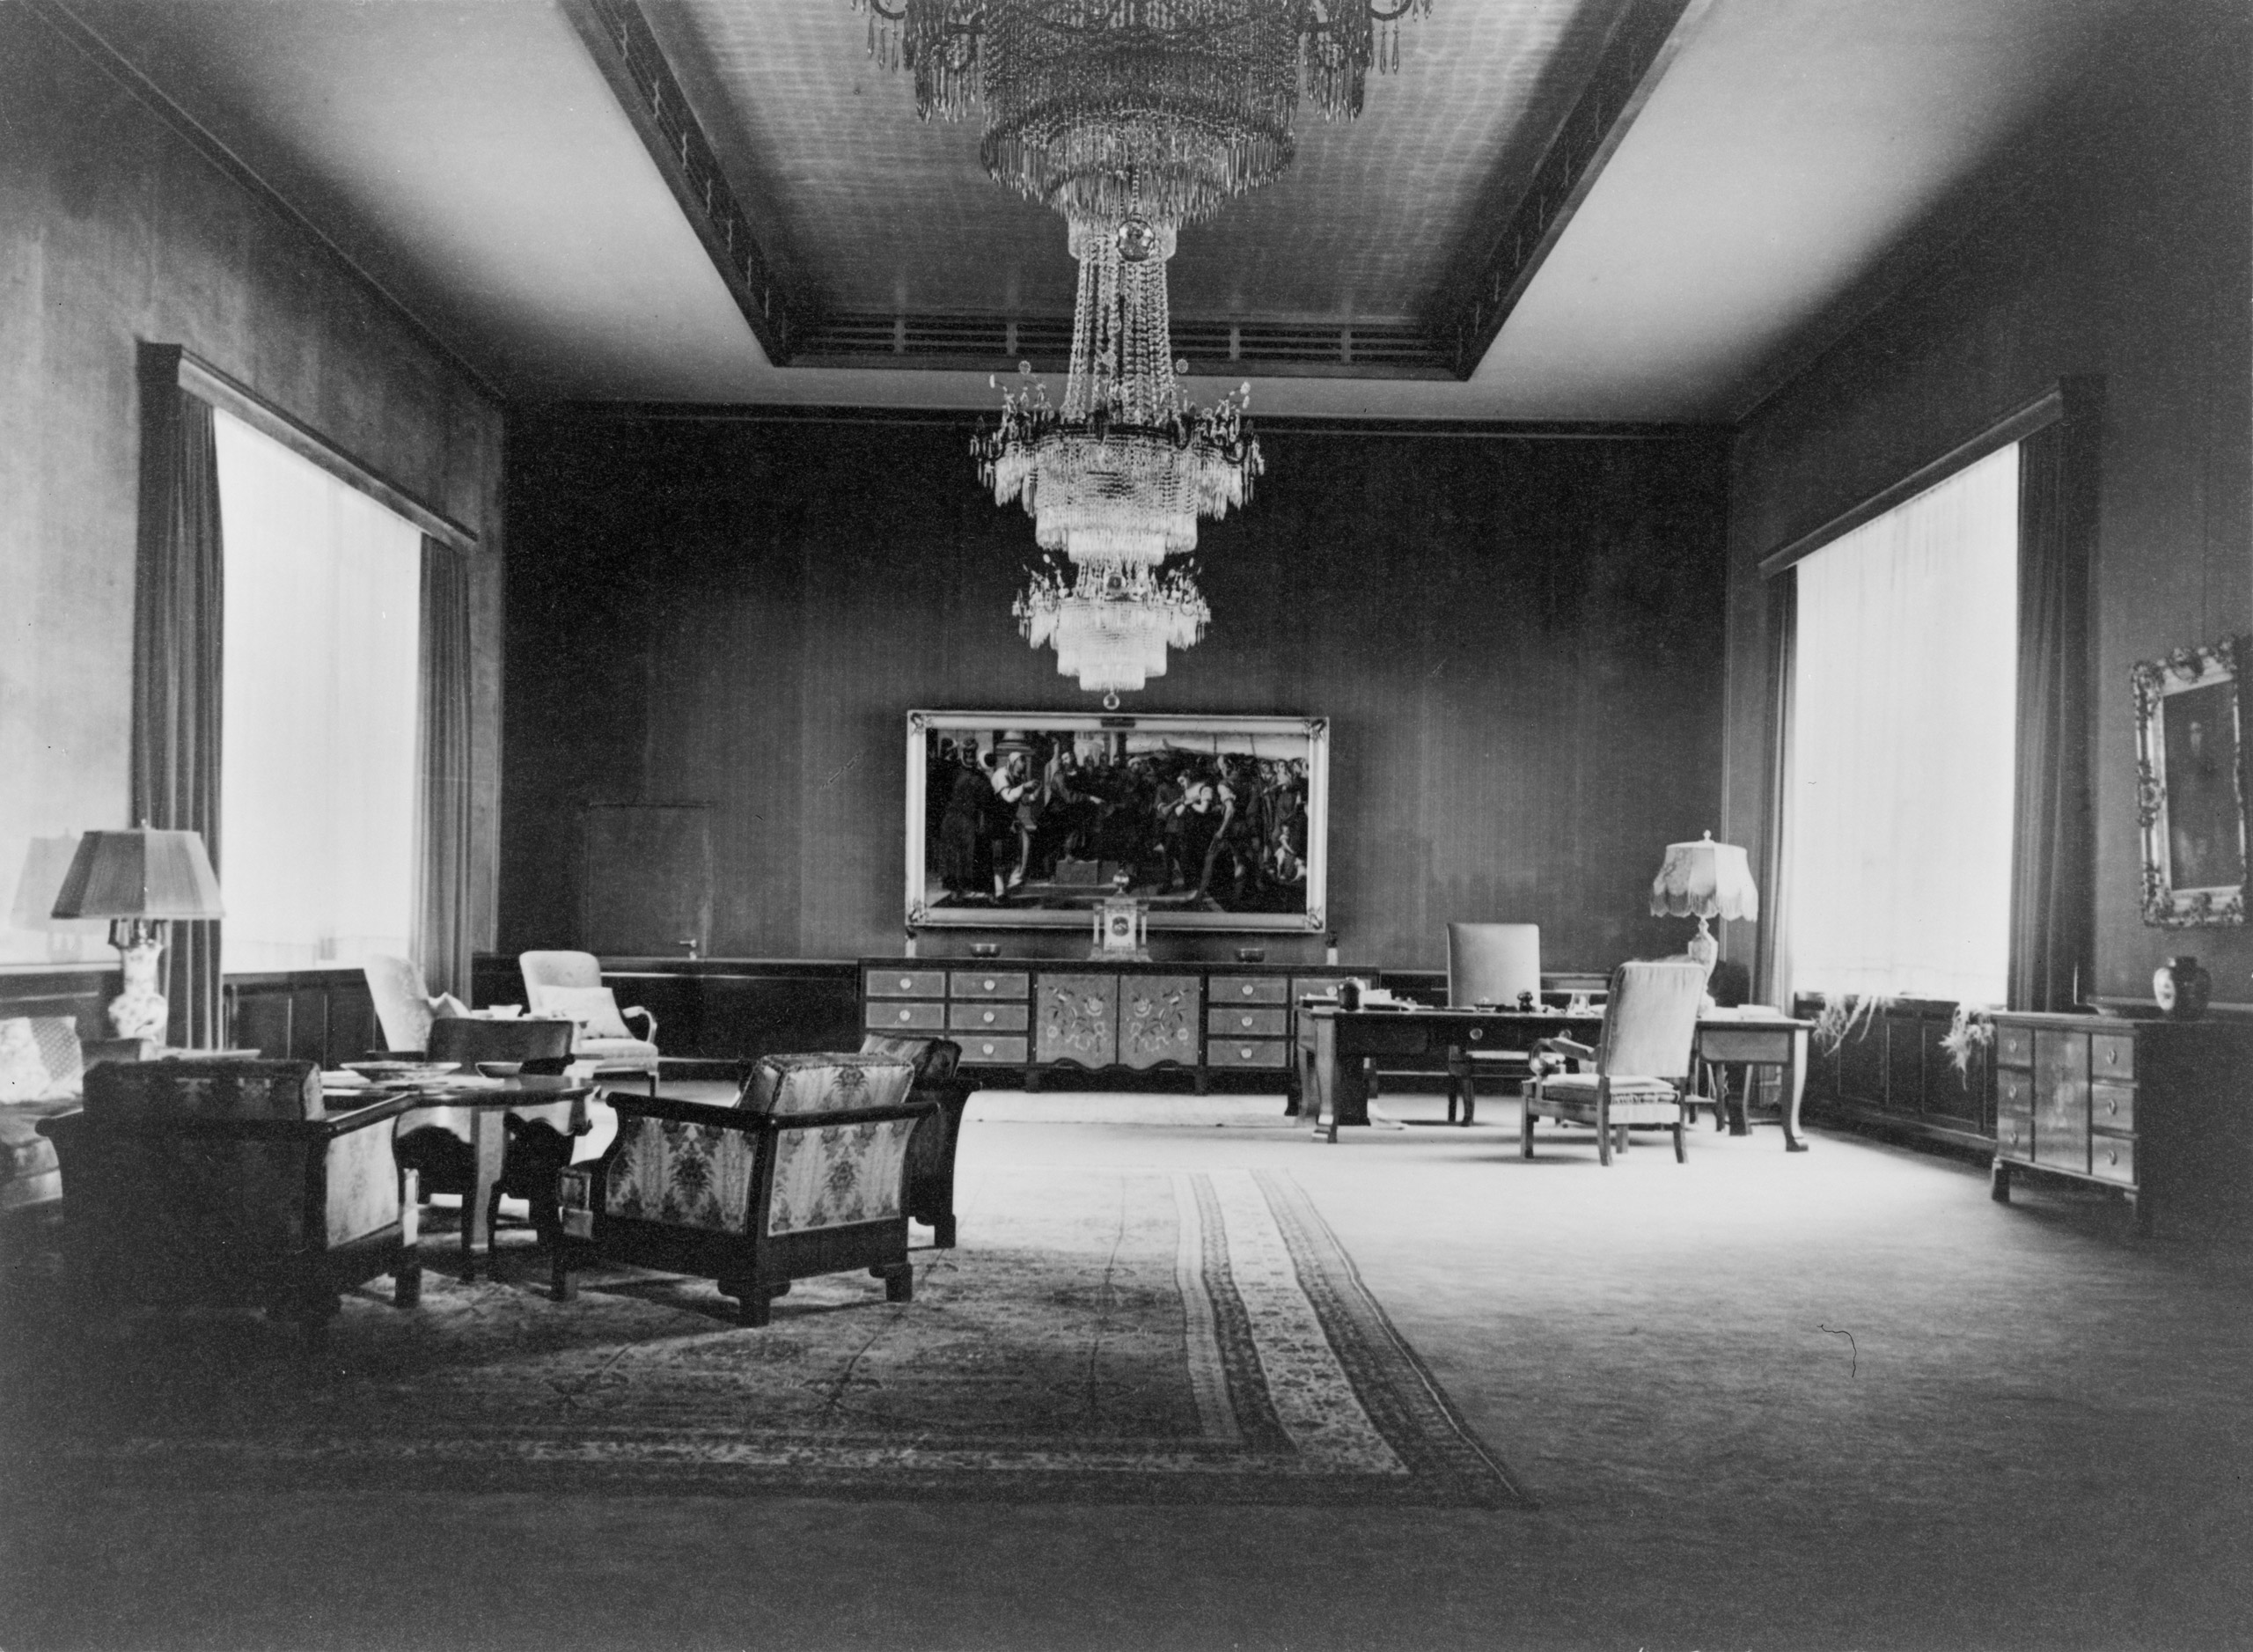 Heinrich Hoffmann, photograph of Hitler's Ceremonial Office on the second floor of the modernist building annex to the Old Chancellery in Berlin after the renovation of the former Red Room by the Atelier Troost, c. 1935.  This office preceded the more famous and monumental formal office designed in 1939 for the New Chancellery by Albert Speer.